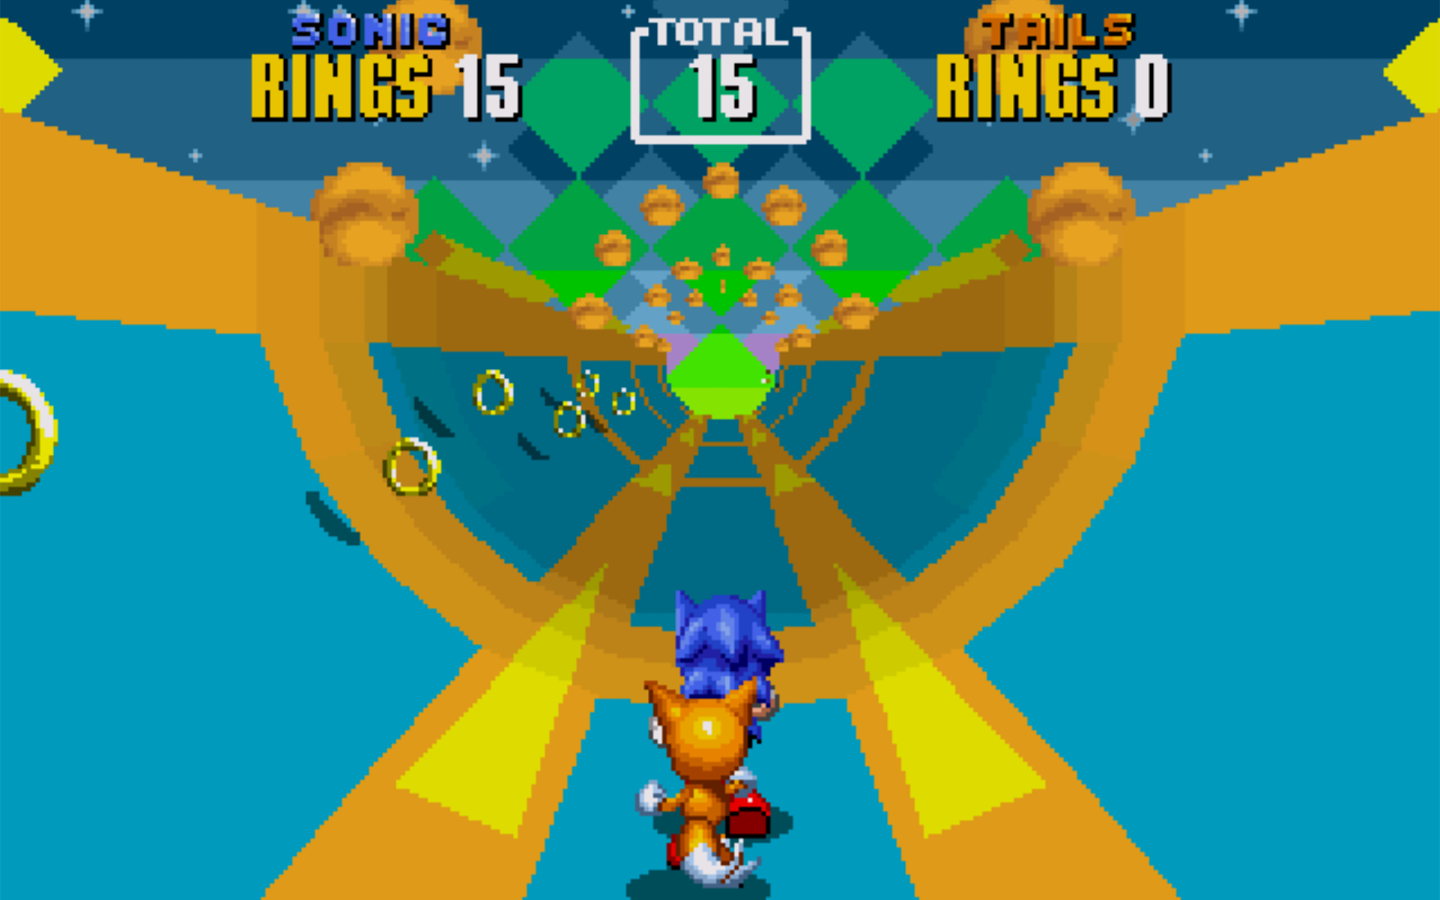 Download sonic the hedgehog 2 for android 3. 0. 1.